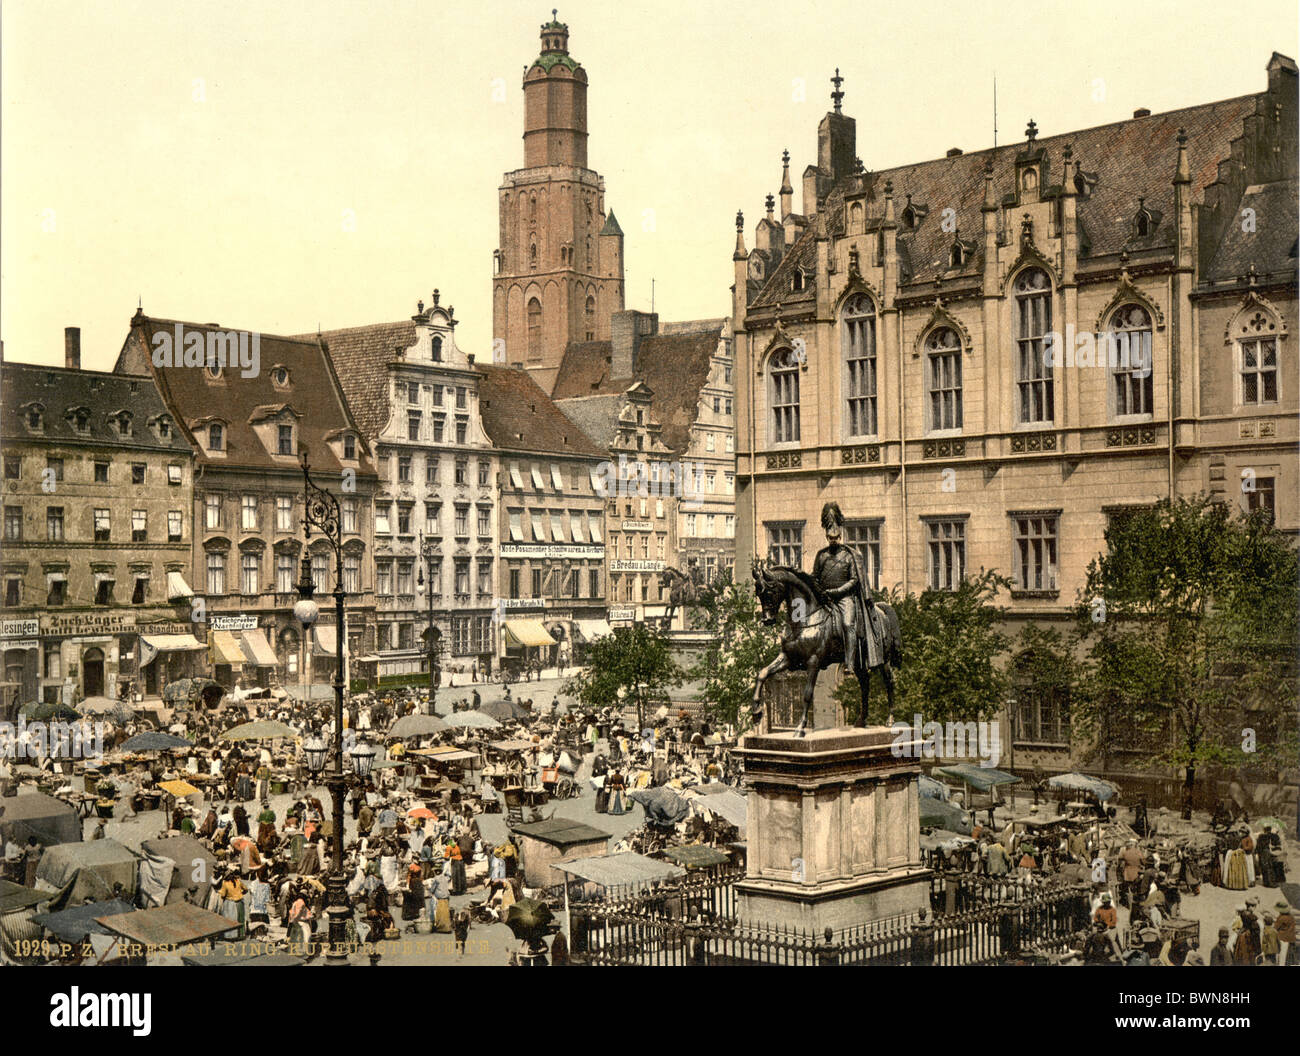 https://c8.alamy.com/comp/BWN8HH/market-place-breslau-silesia-formerly-germany-europe-german-empire-BWN8HH.jpg